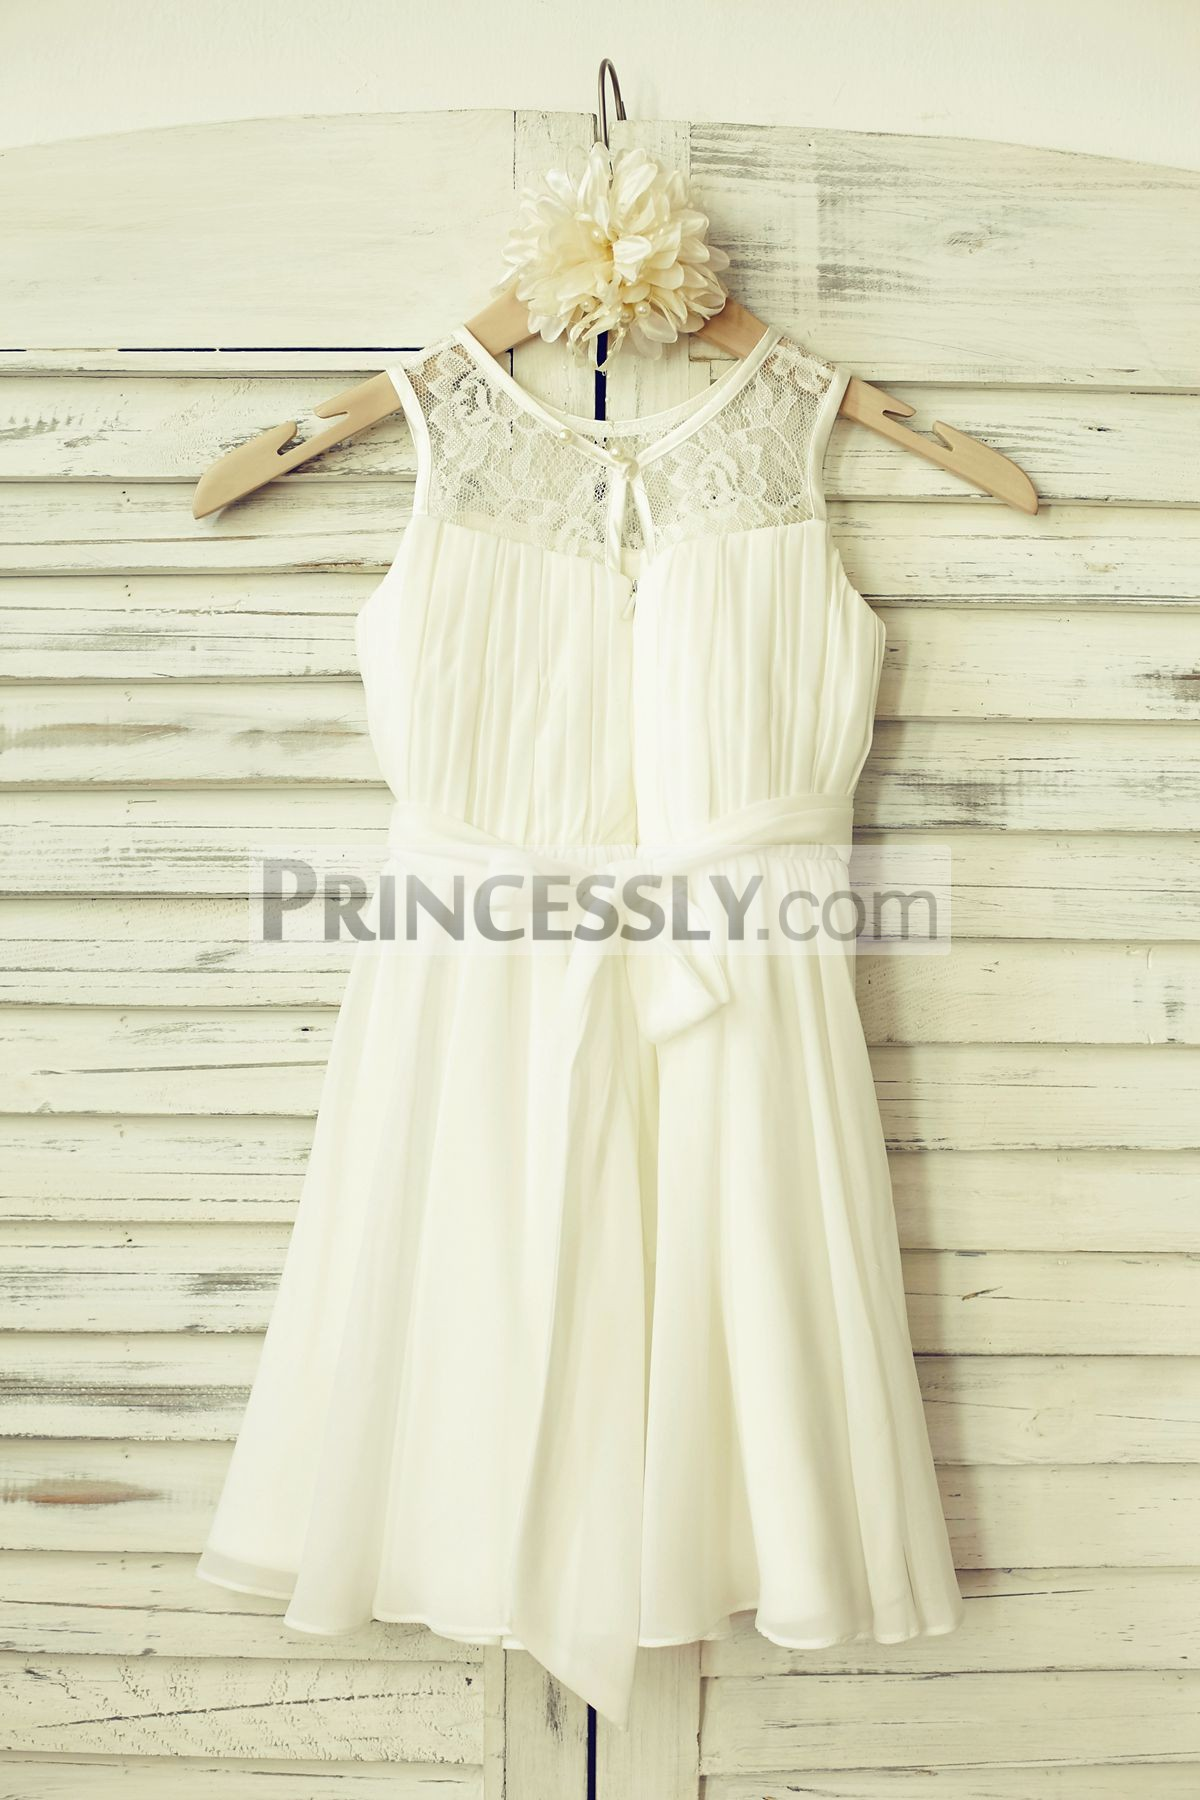 Ivory sheer lace chiffon flower girl dress with sash